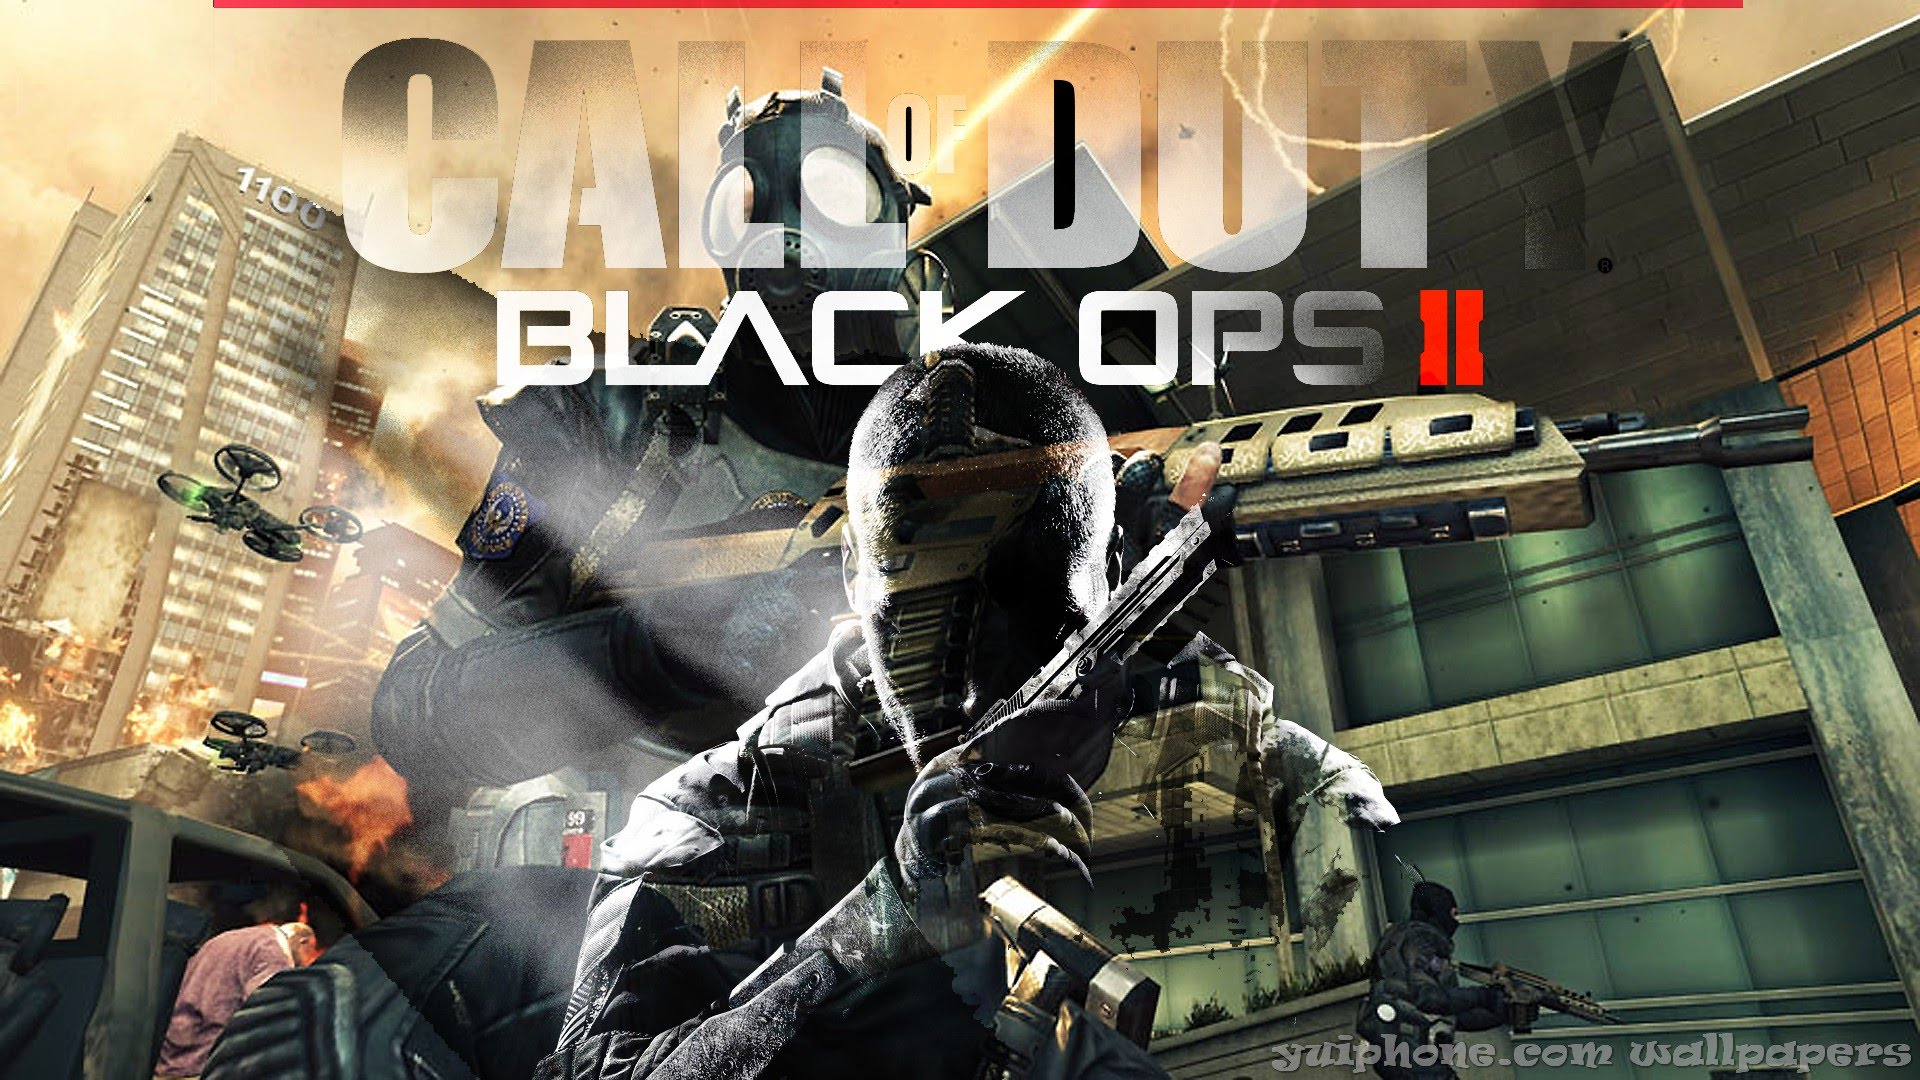 Call-Of-Duty-Black-Ops-LIVE-STREAM-w-Commentary-PS-GTAV-part-COD-wallpaper-wp3403640